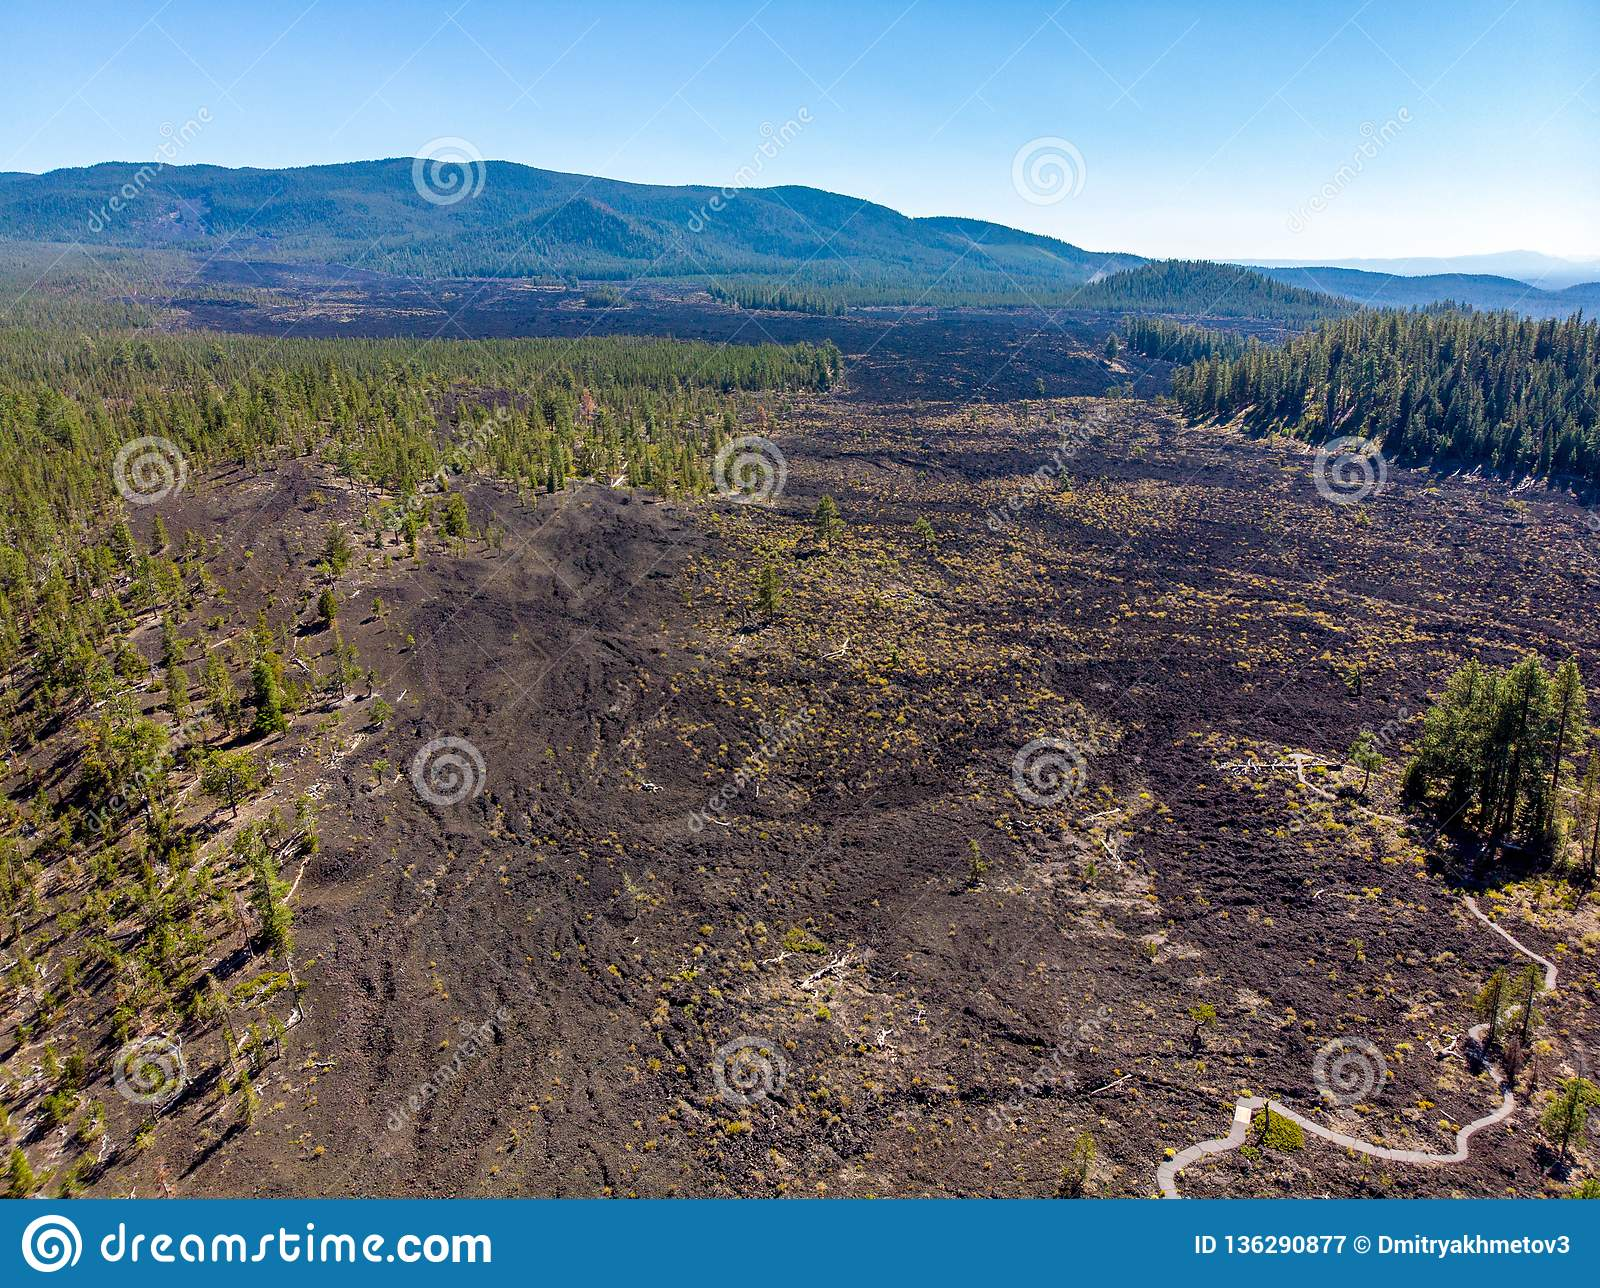 Aerial view of Lava Cast Forest of Newberry Volcano Monument